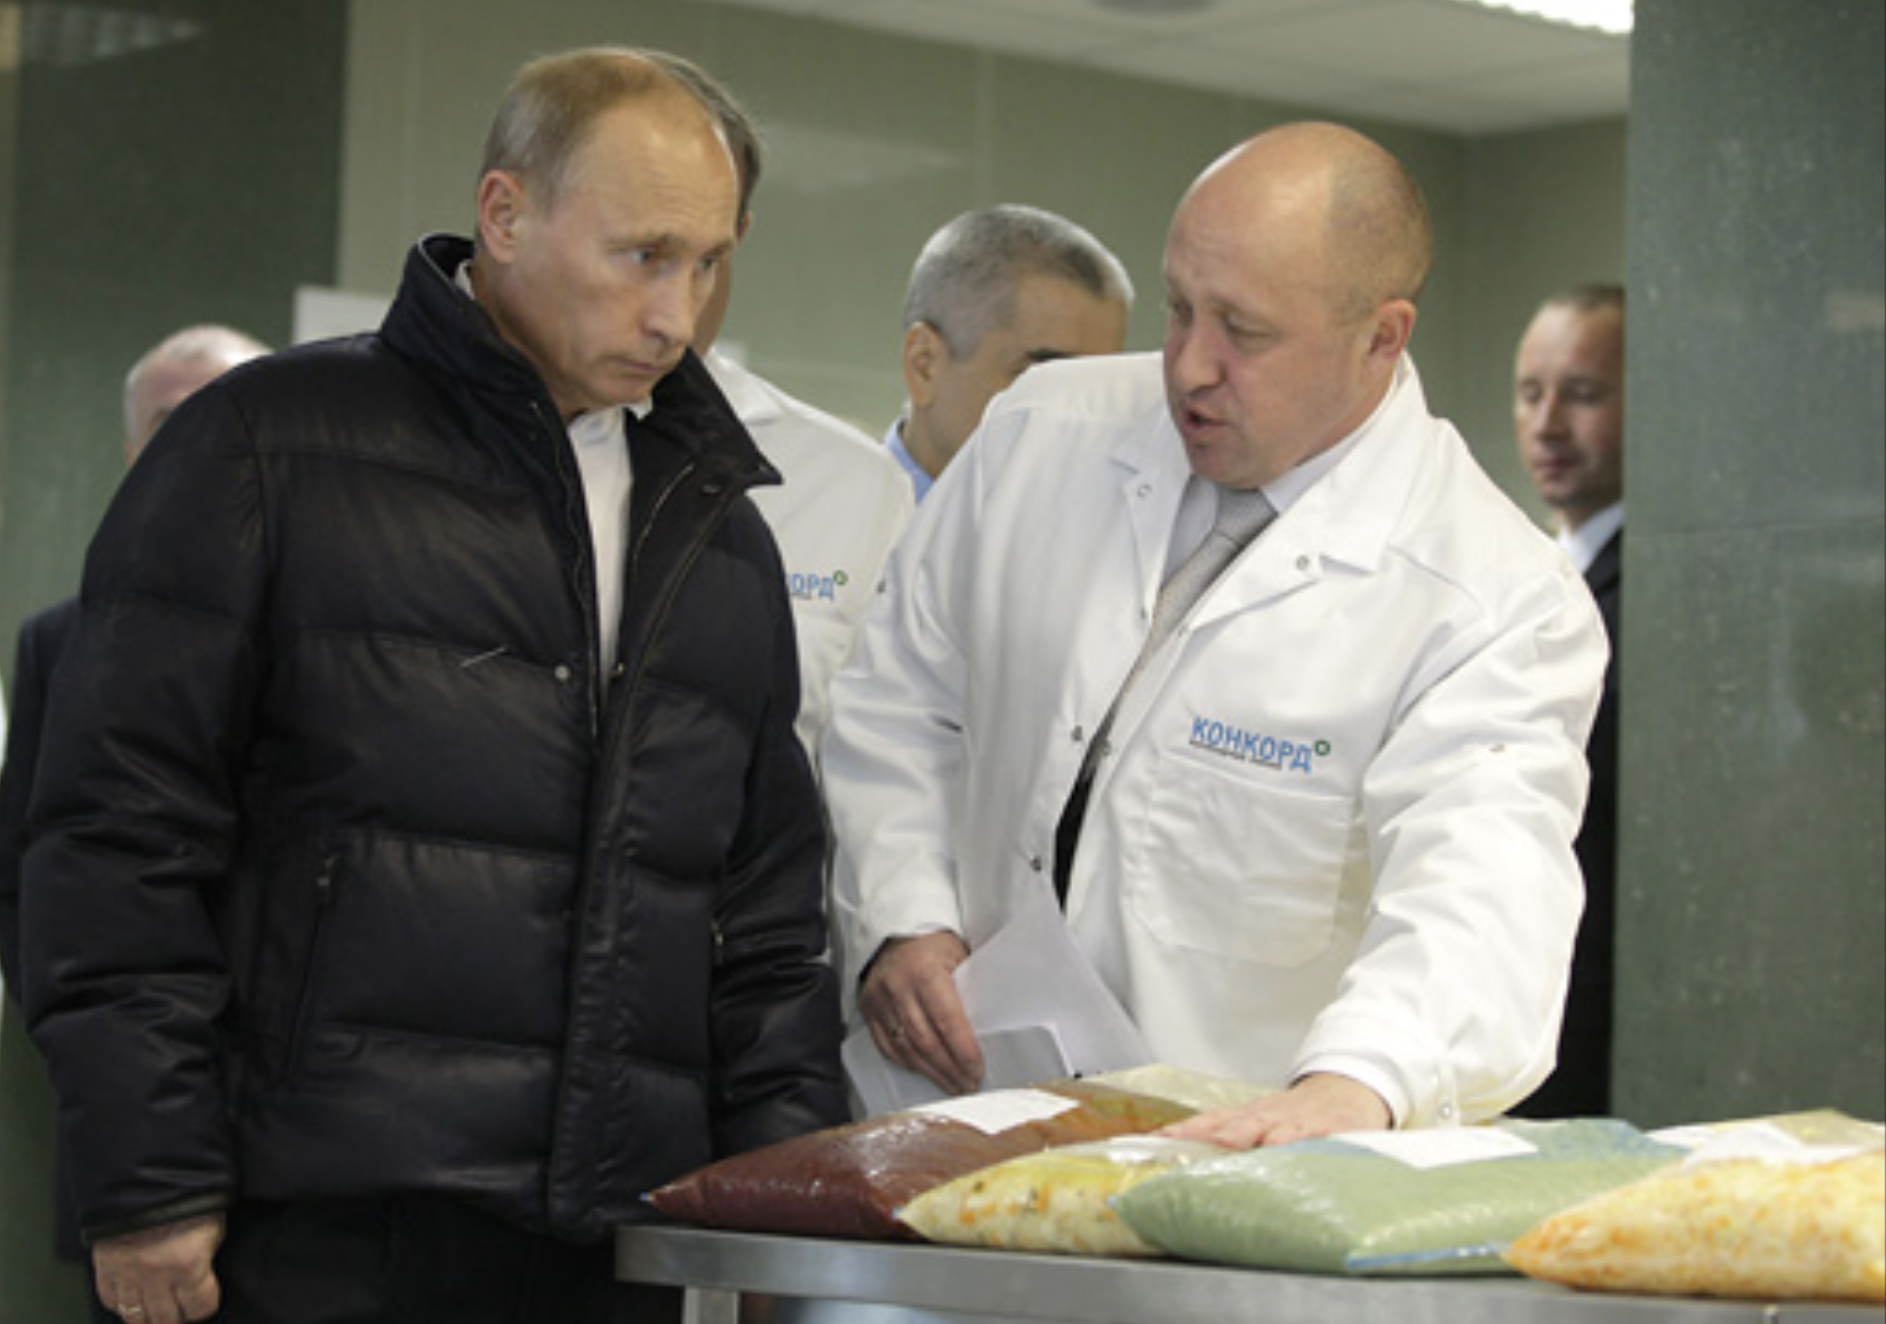 The Connection Between Putin's Chef, Global Political Interference and a Ukrainian Invasion